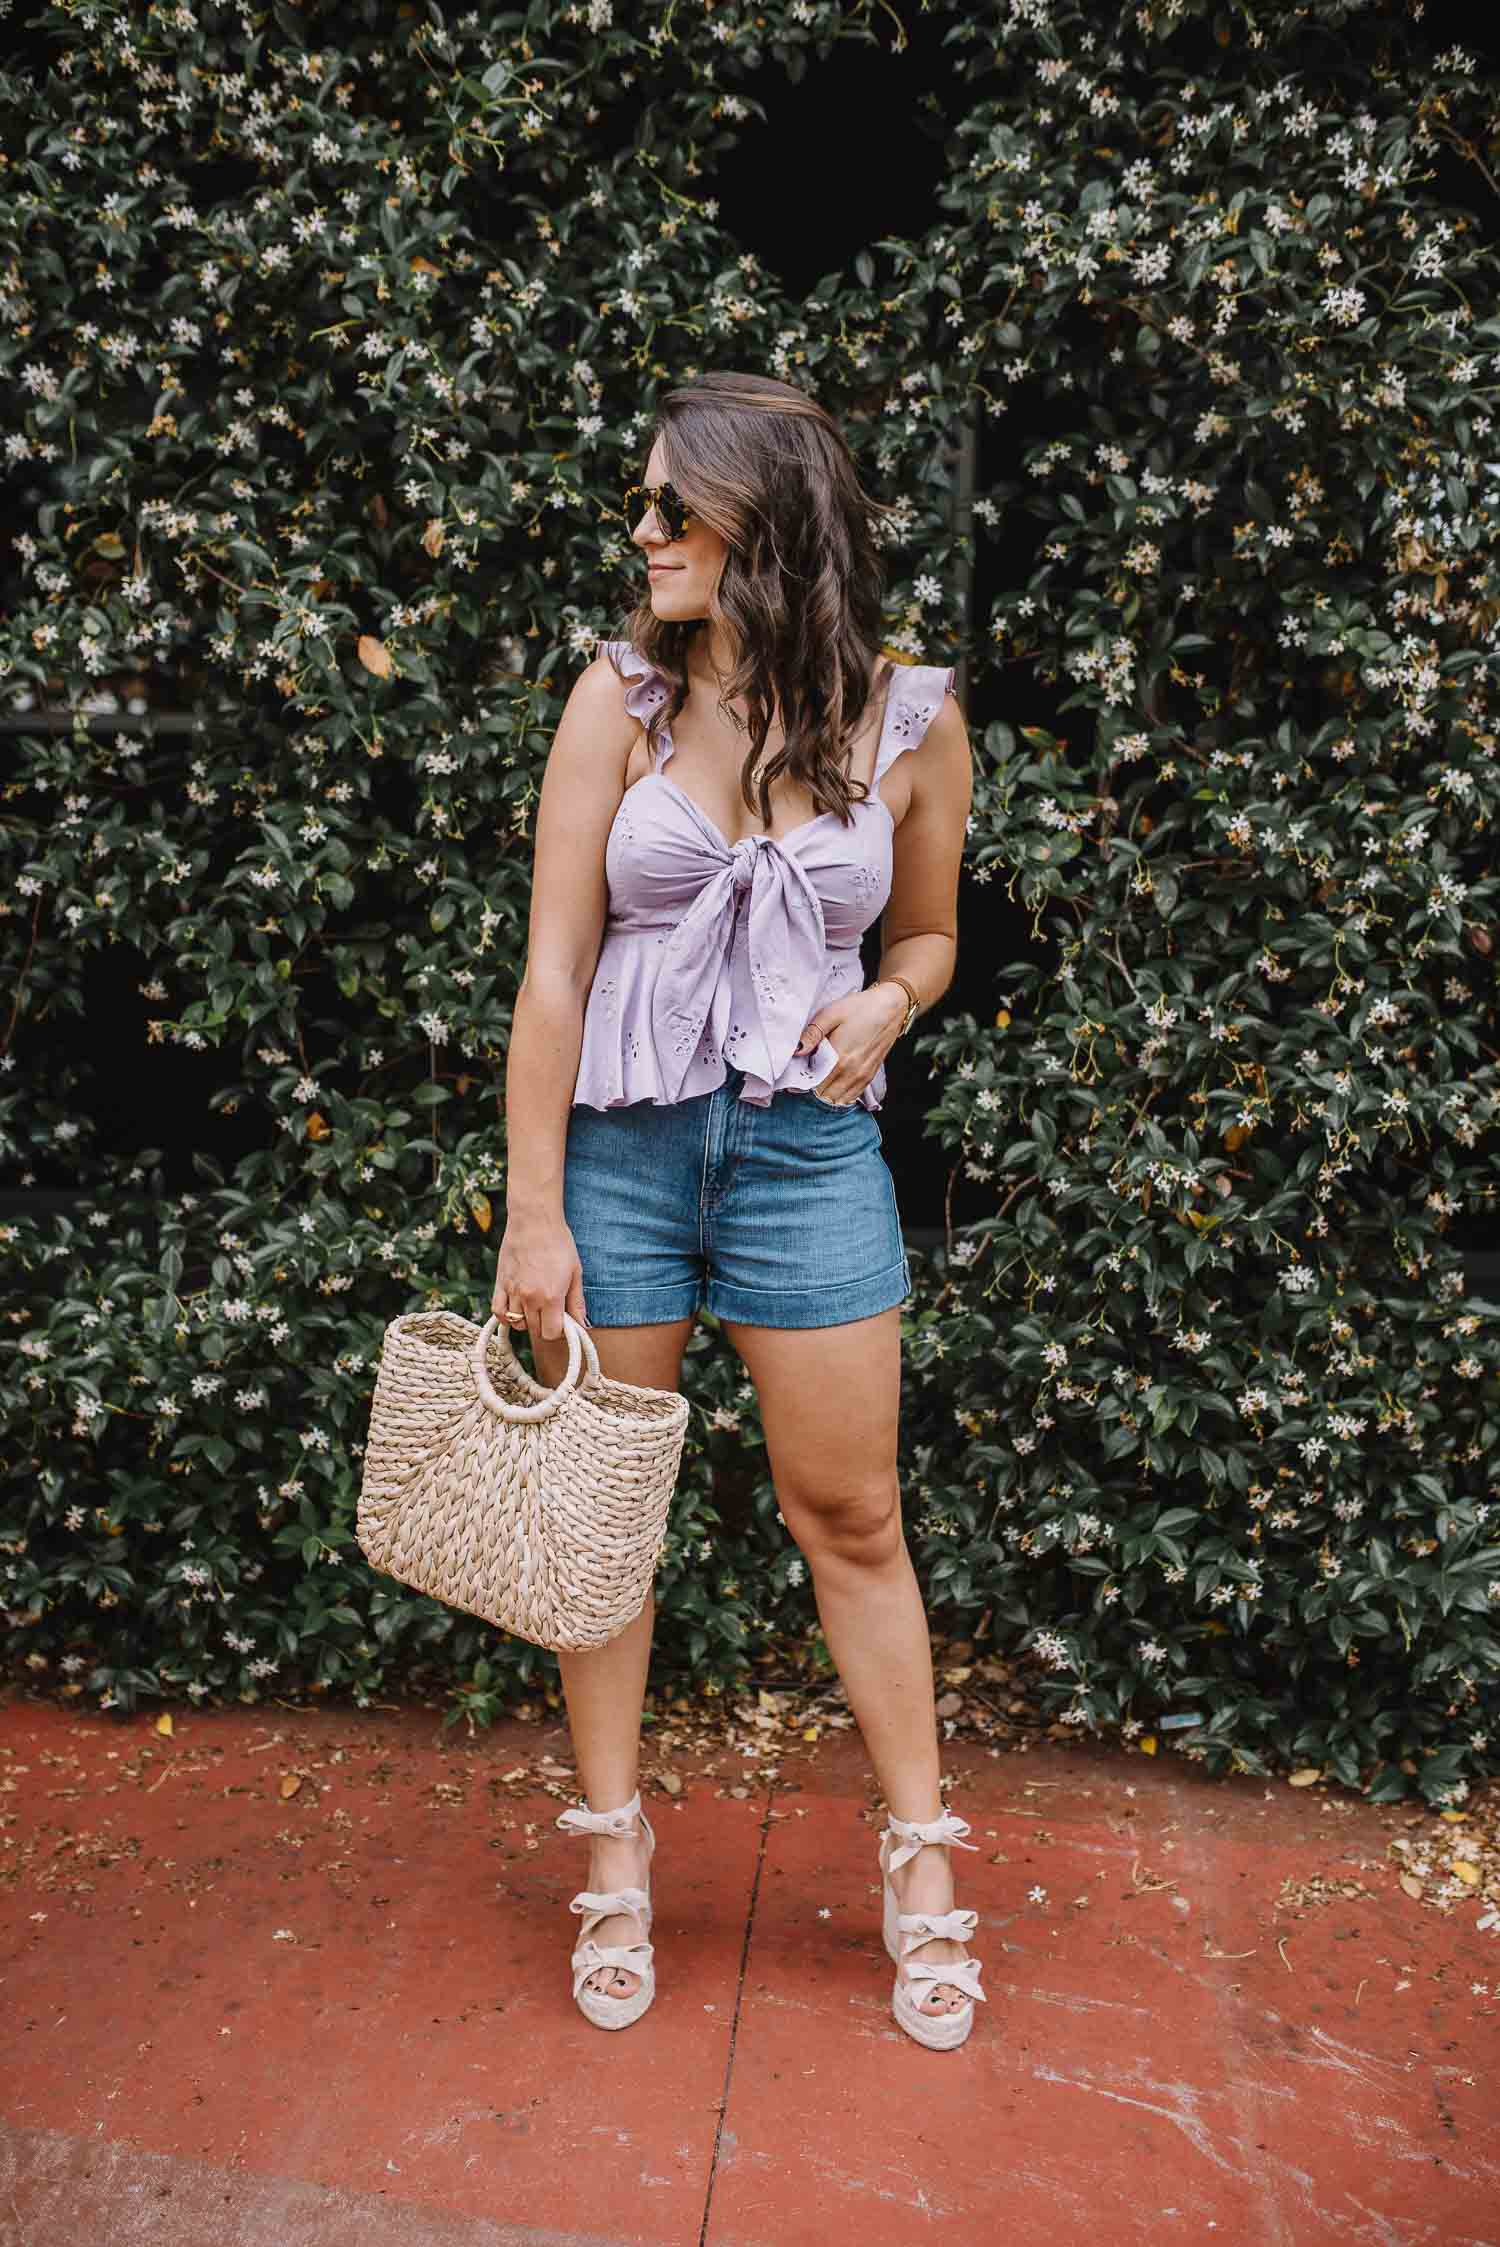 lilac eyelt top, summer outfit ideas, straw bag- My Style Vita